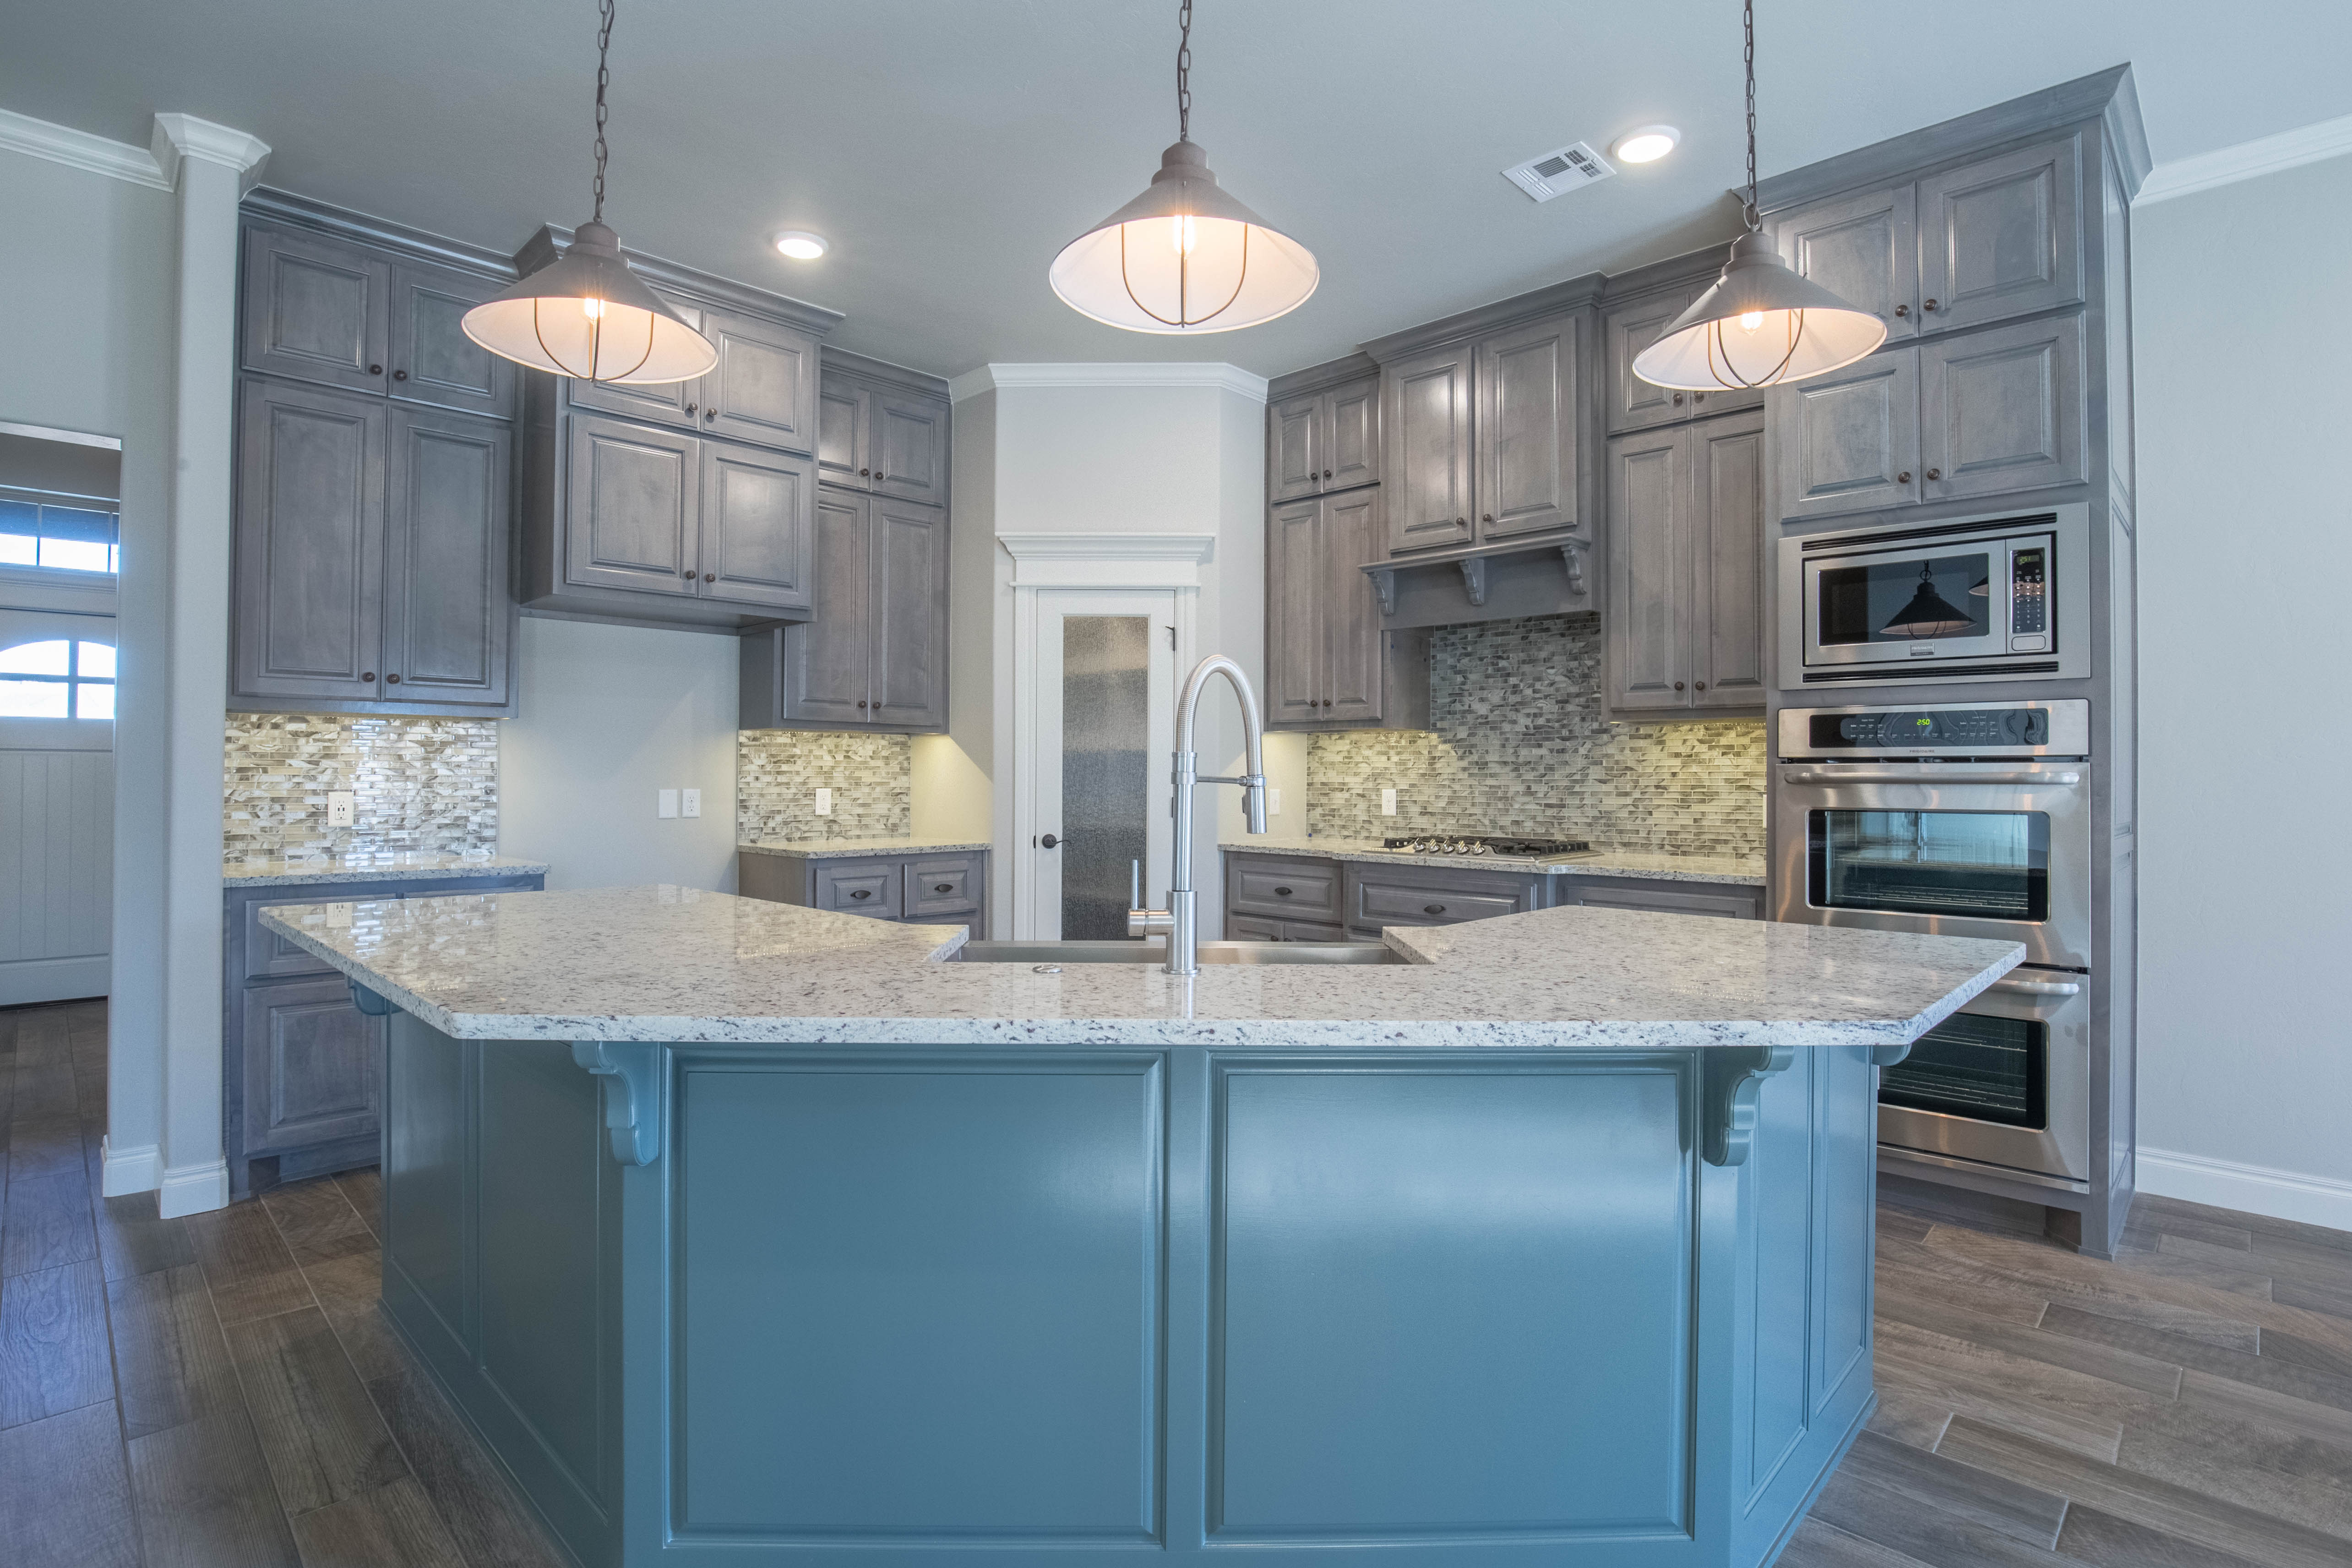 Remodel, resale, or new home: What is the best choice for you ...